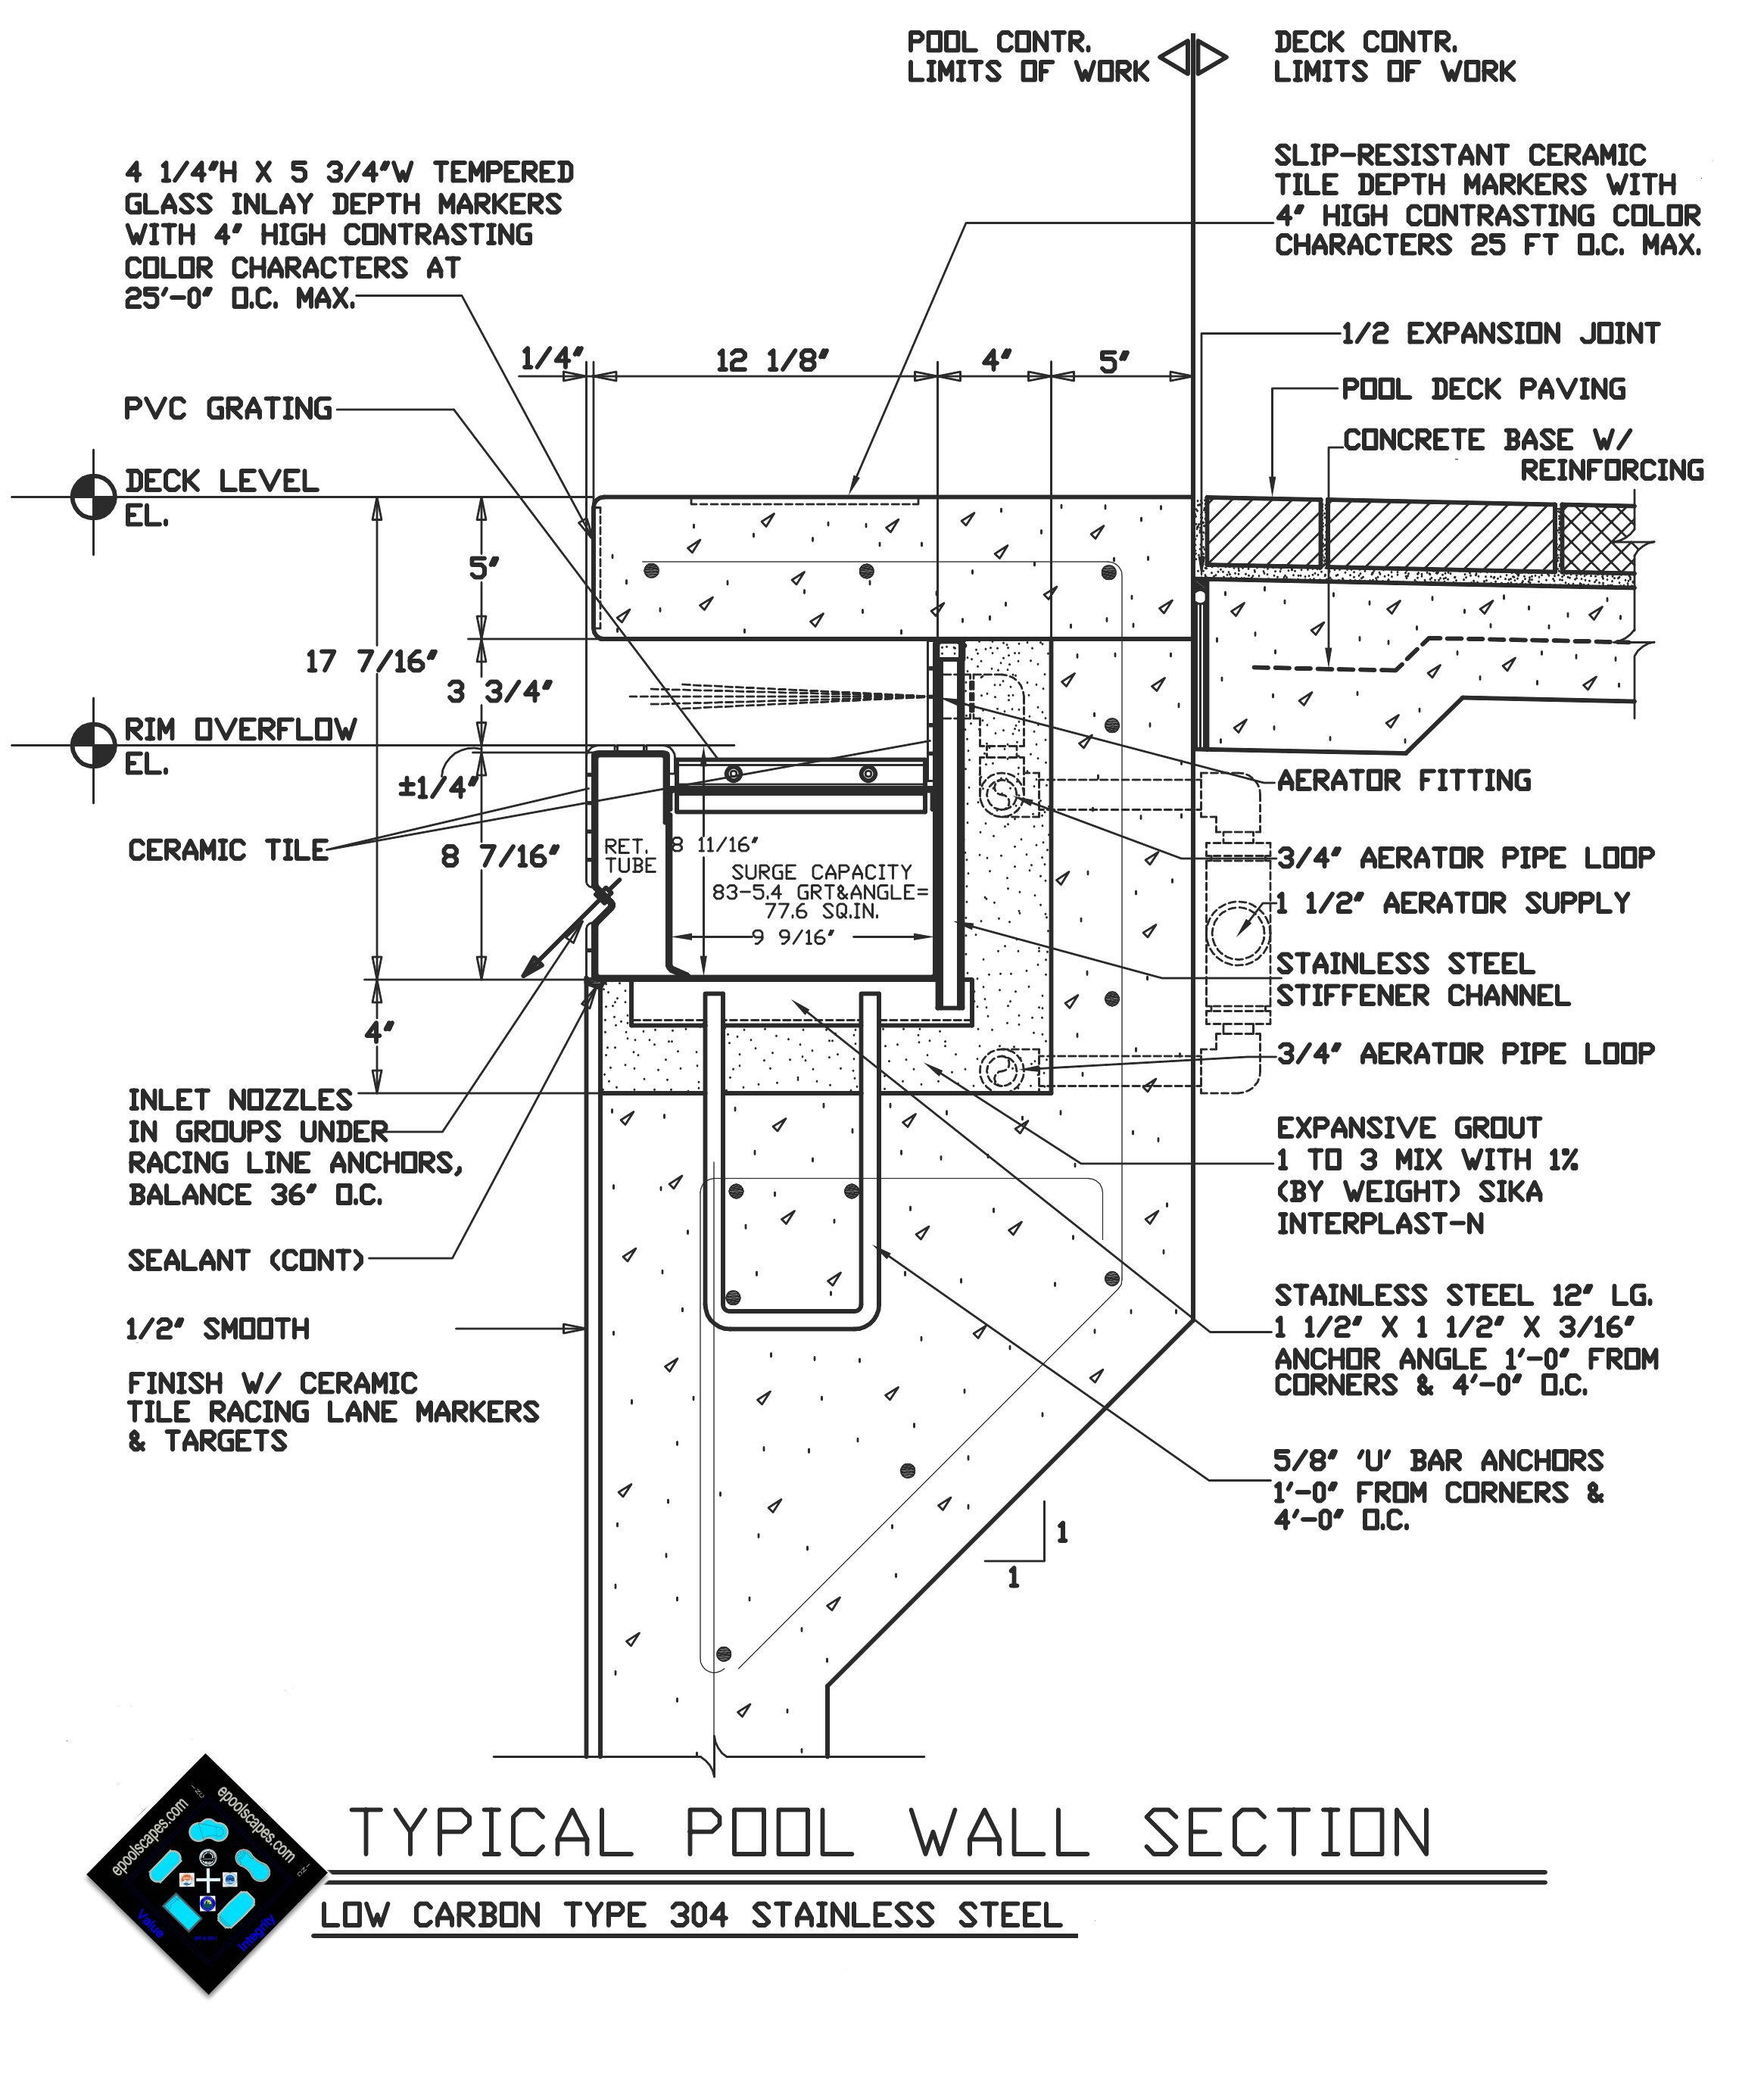 Swimming pool autocad drawing details pinteres for Pool design guidelines